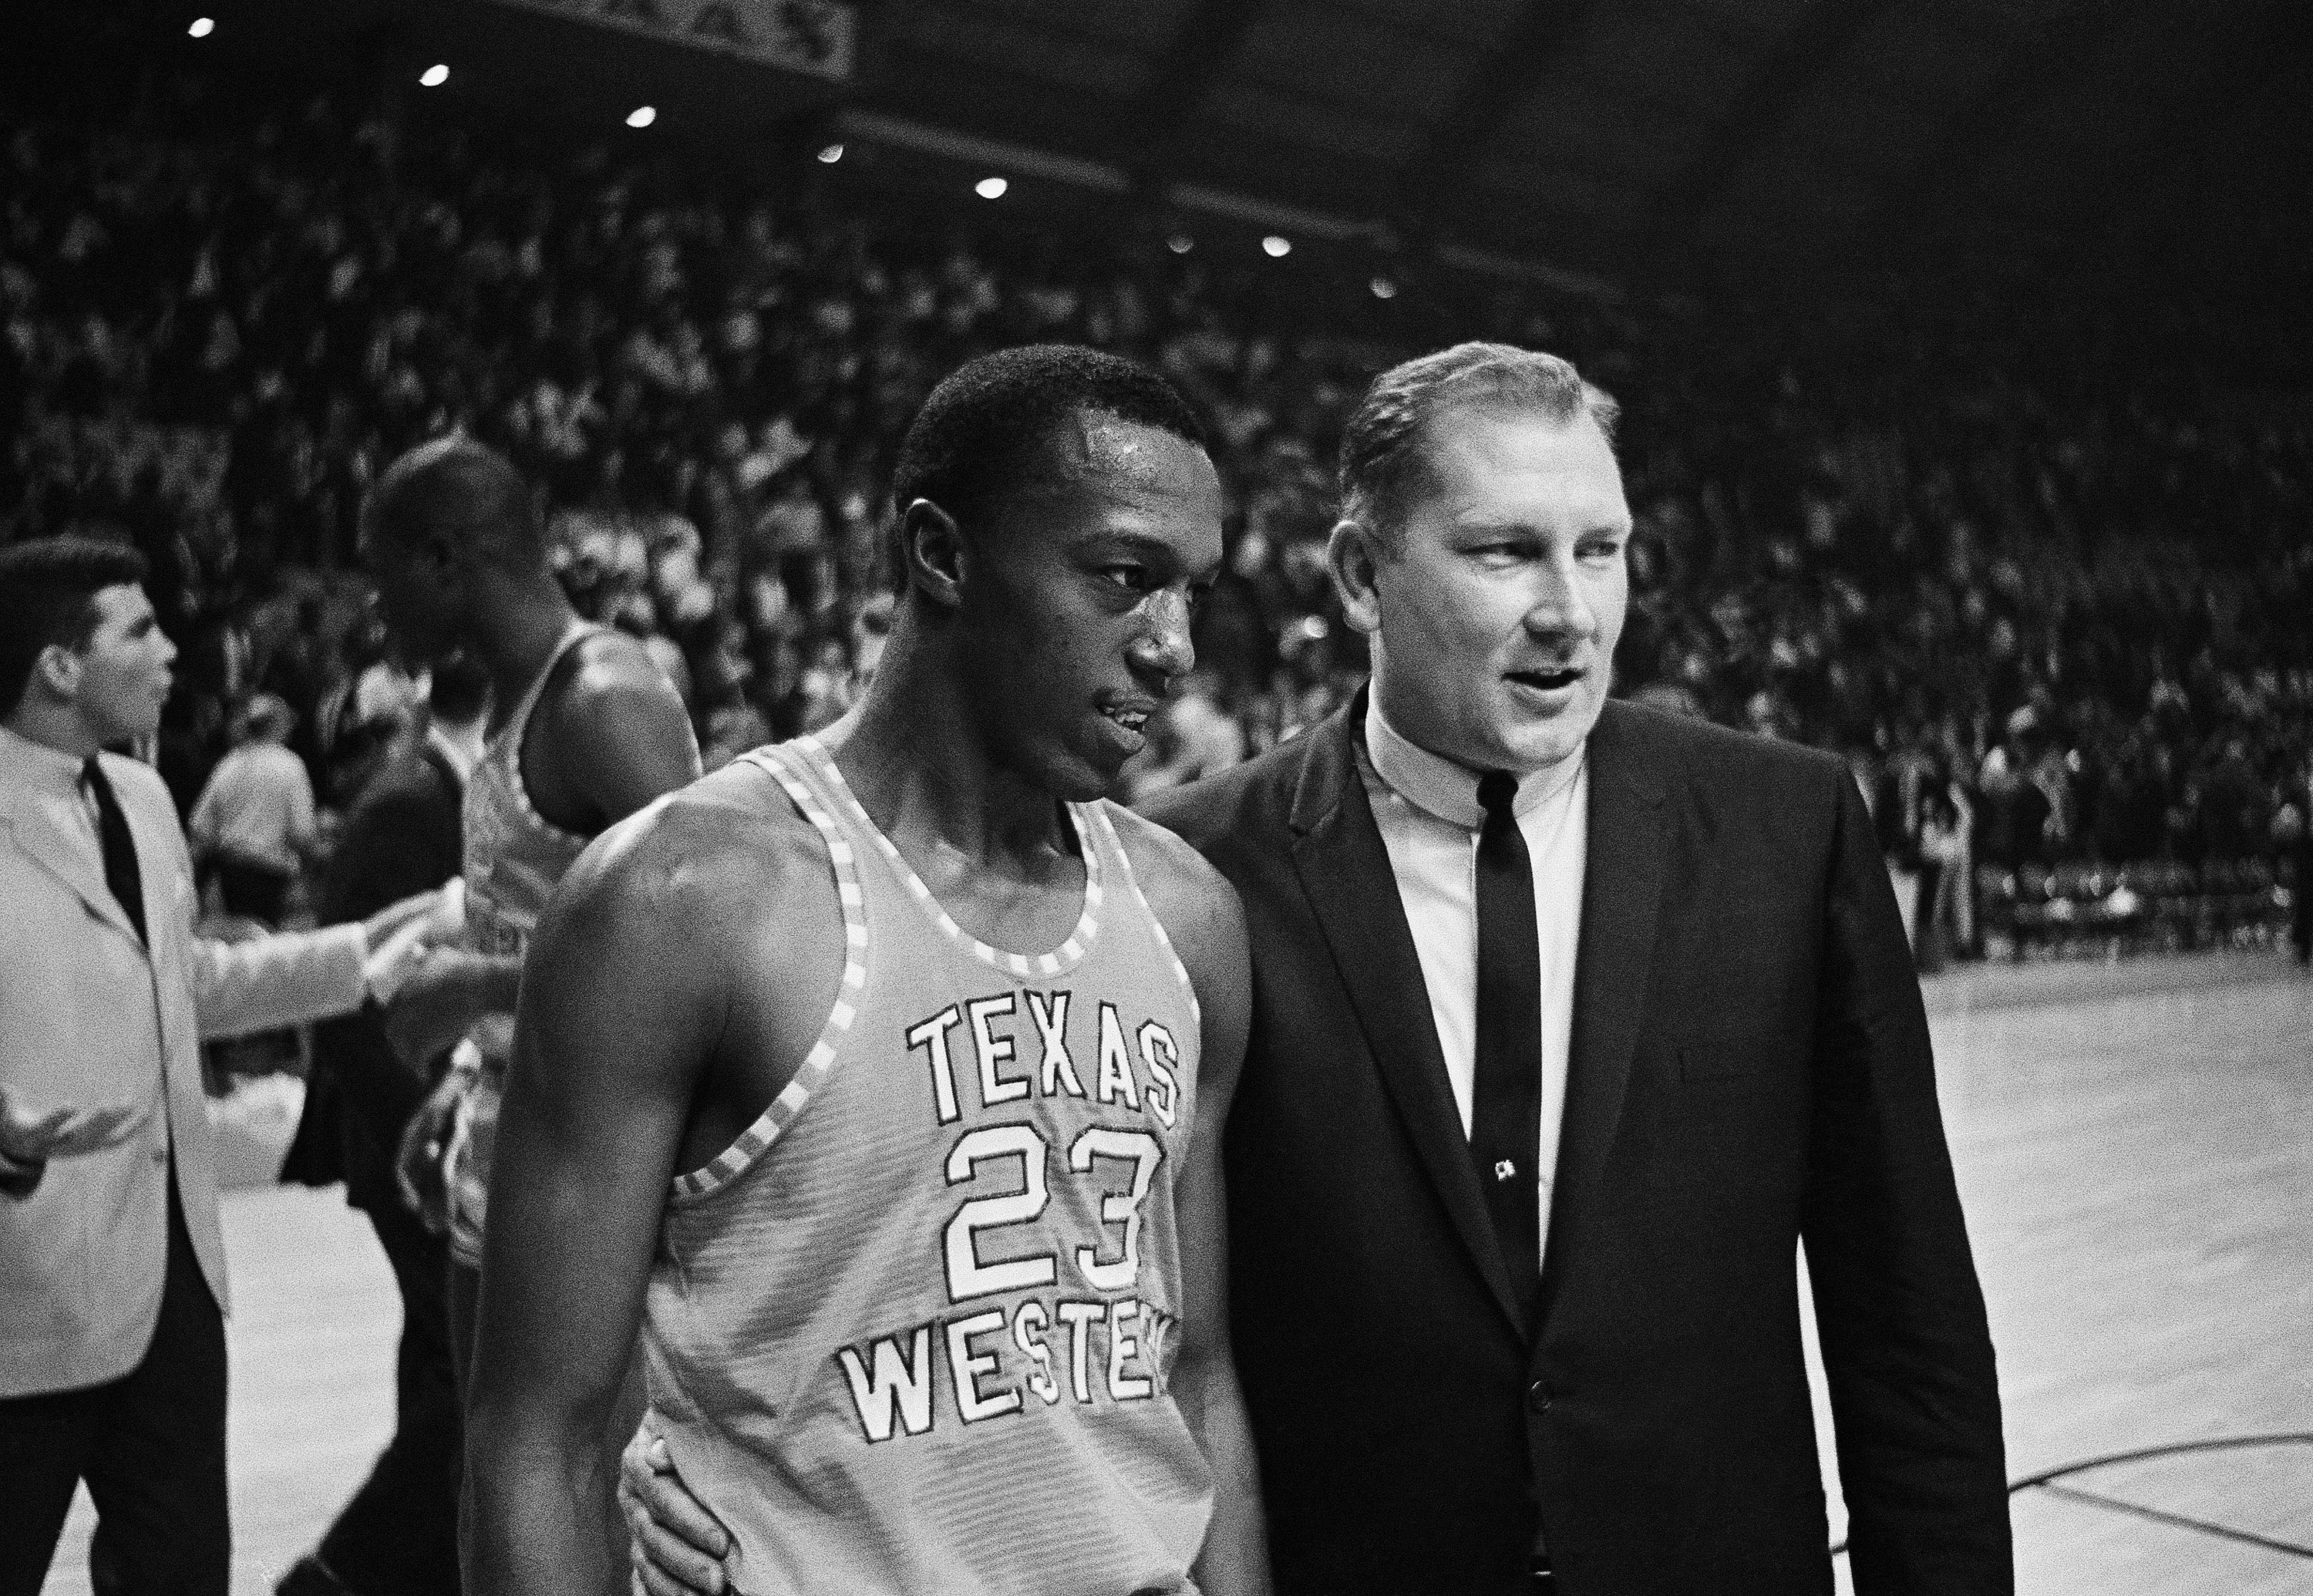 FILE - In this March 18, 1966, file photo, Texas Western coach Don Haskins, right, escorts Orsten Artis off the court after Texas Western defeated Utah in a semifinal in the NCAA men's college basketball tournament, at the University of Maryland, in Colle